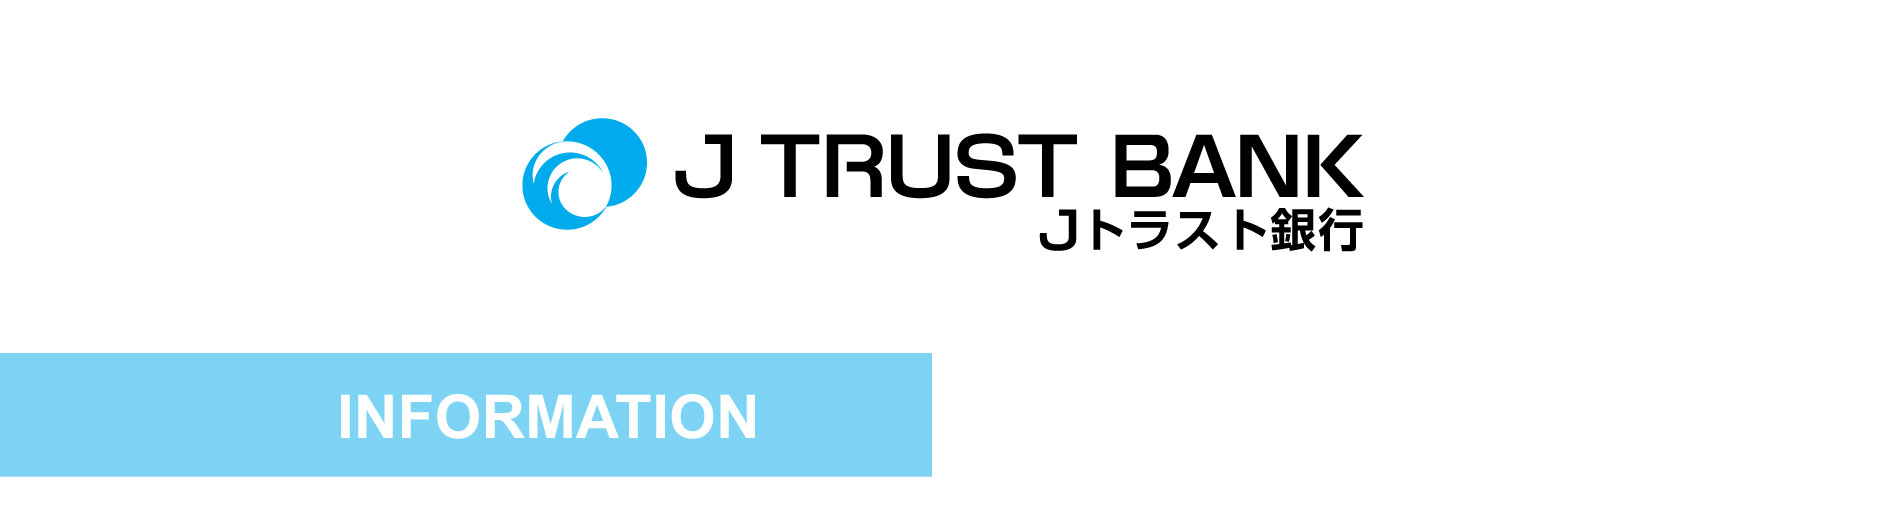 mainvisual jtrust